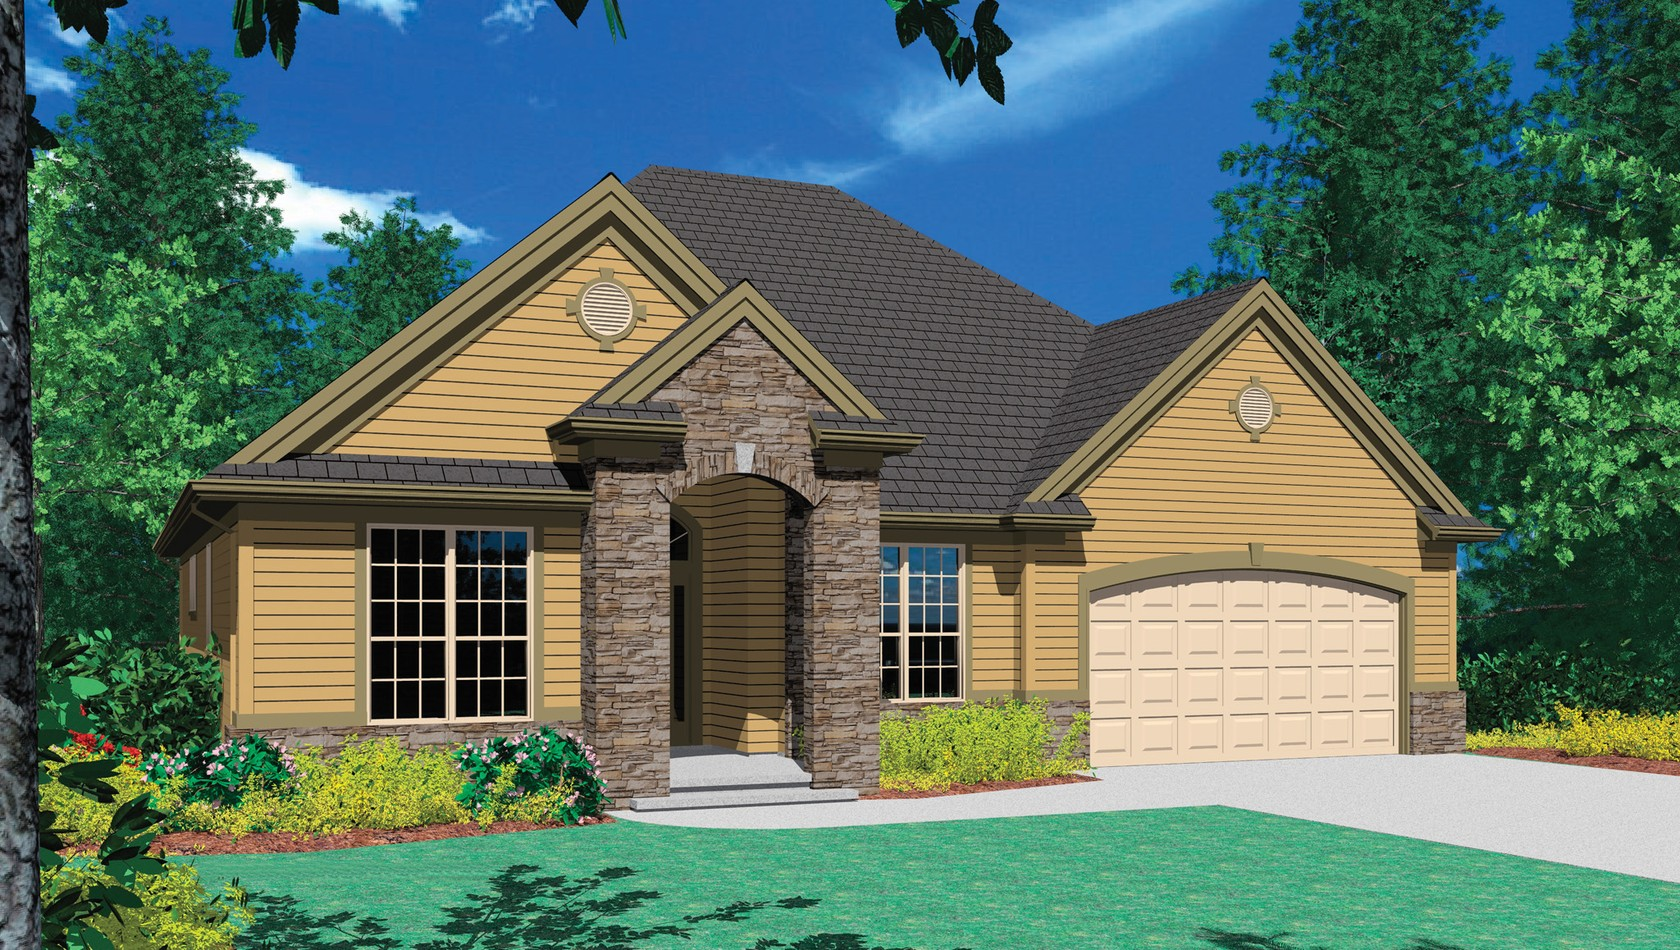 Main image for house plan B1146A: The